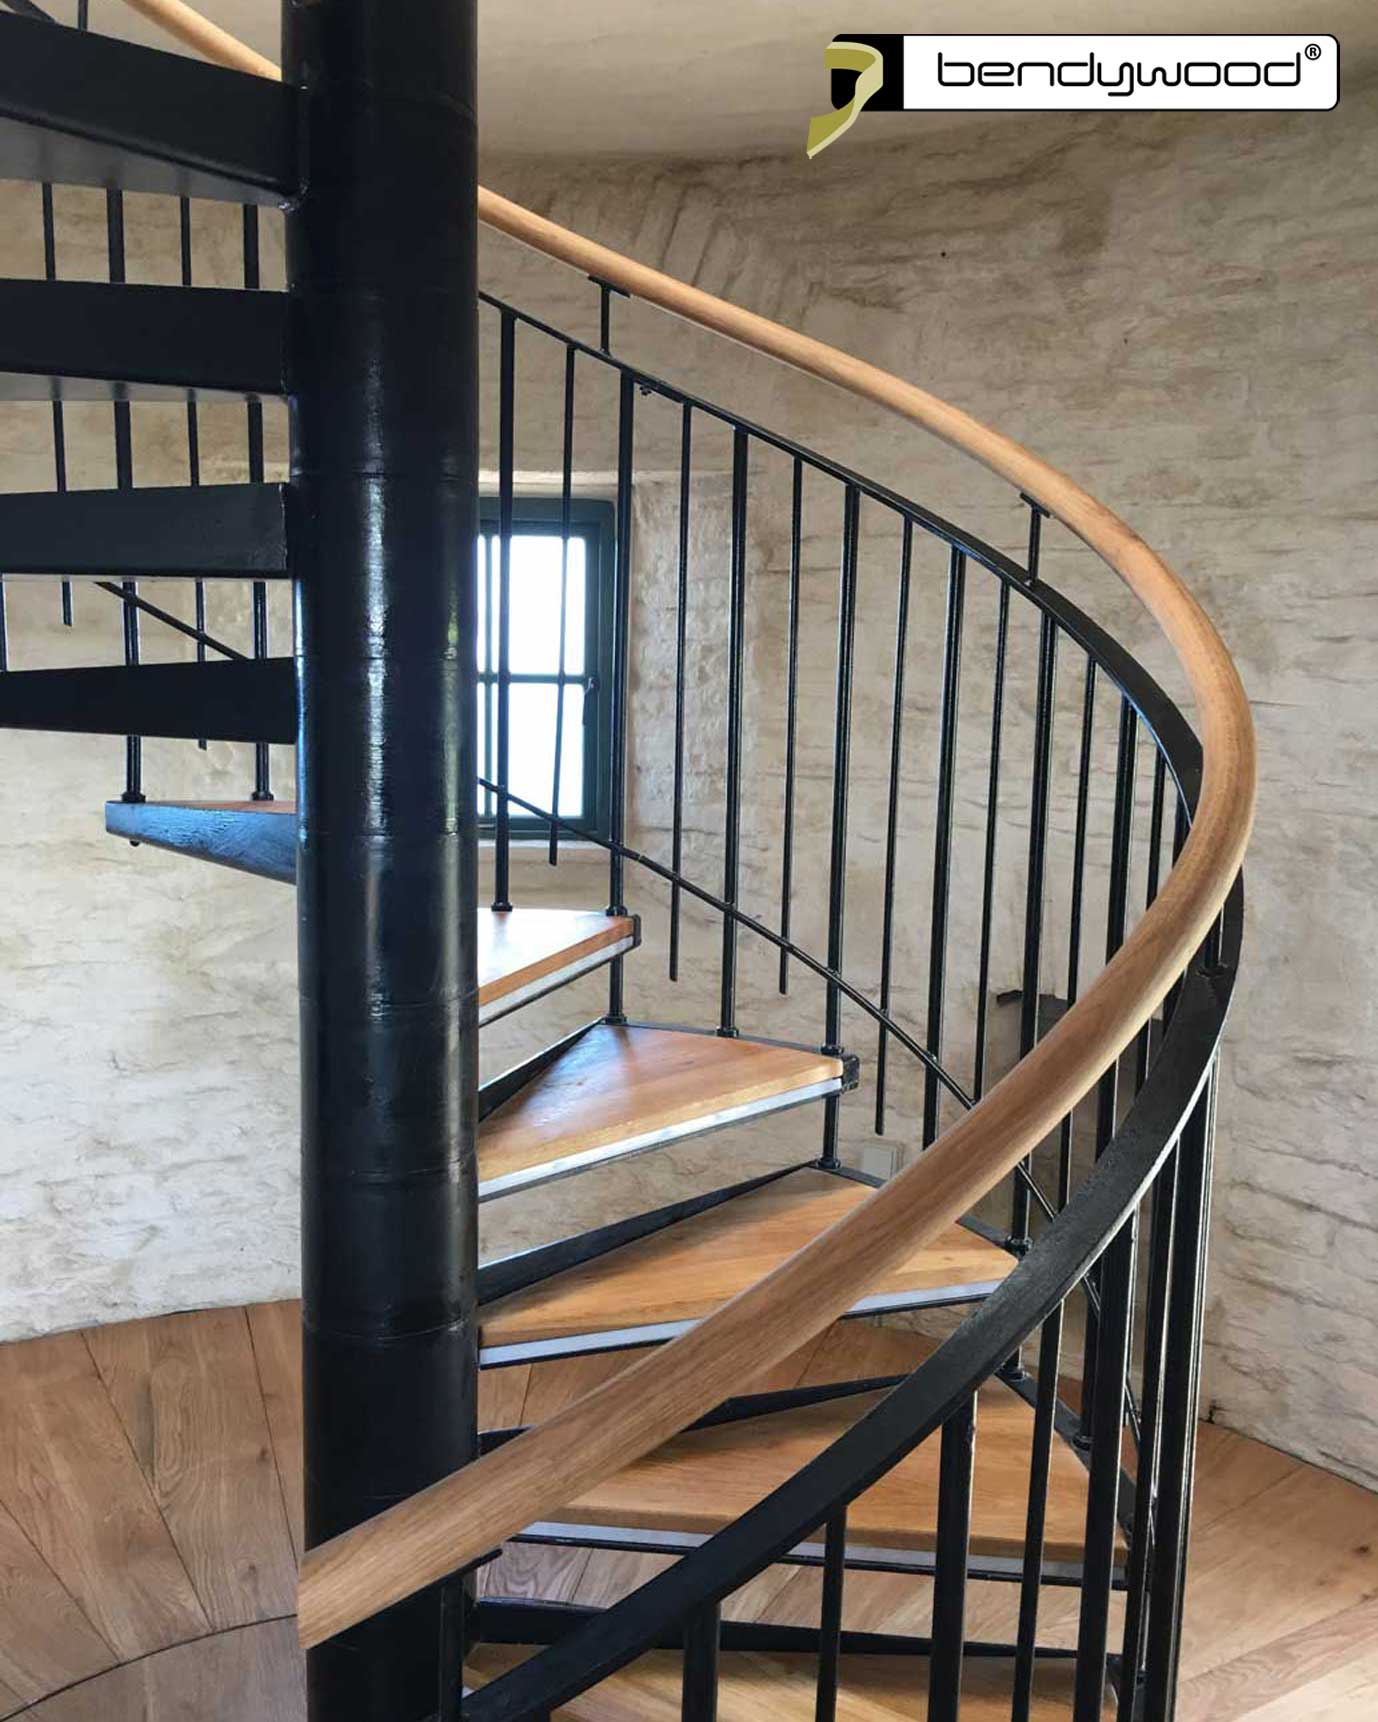 Round bending handrail in Bendywood®-oak for spiral staircase with radius 80 cm